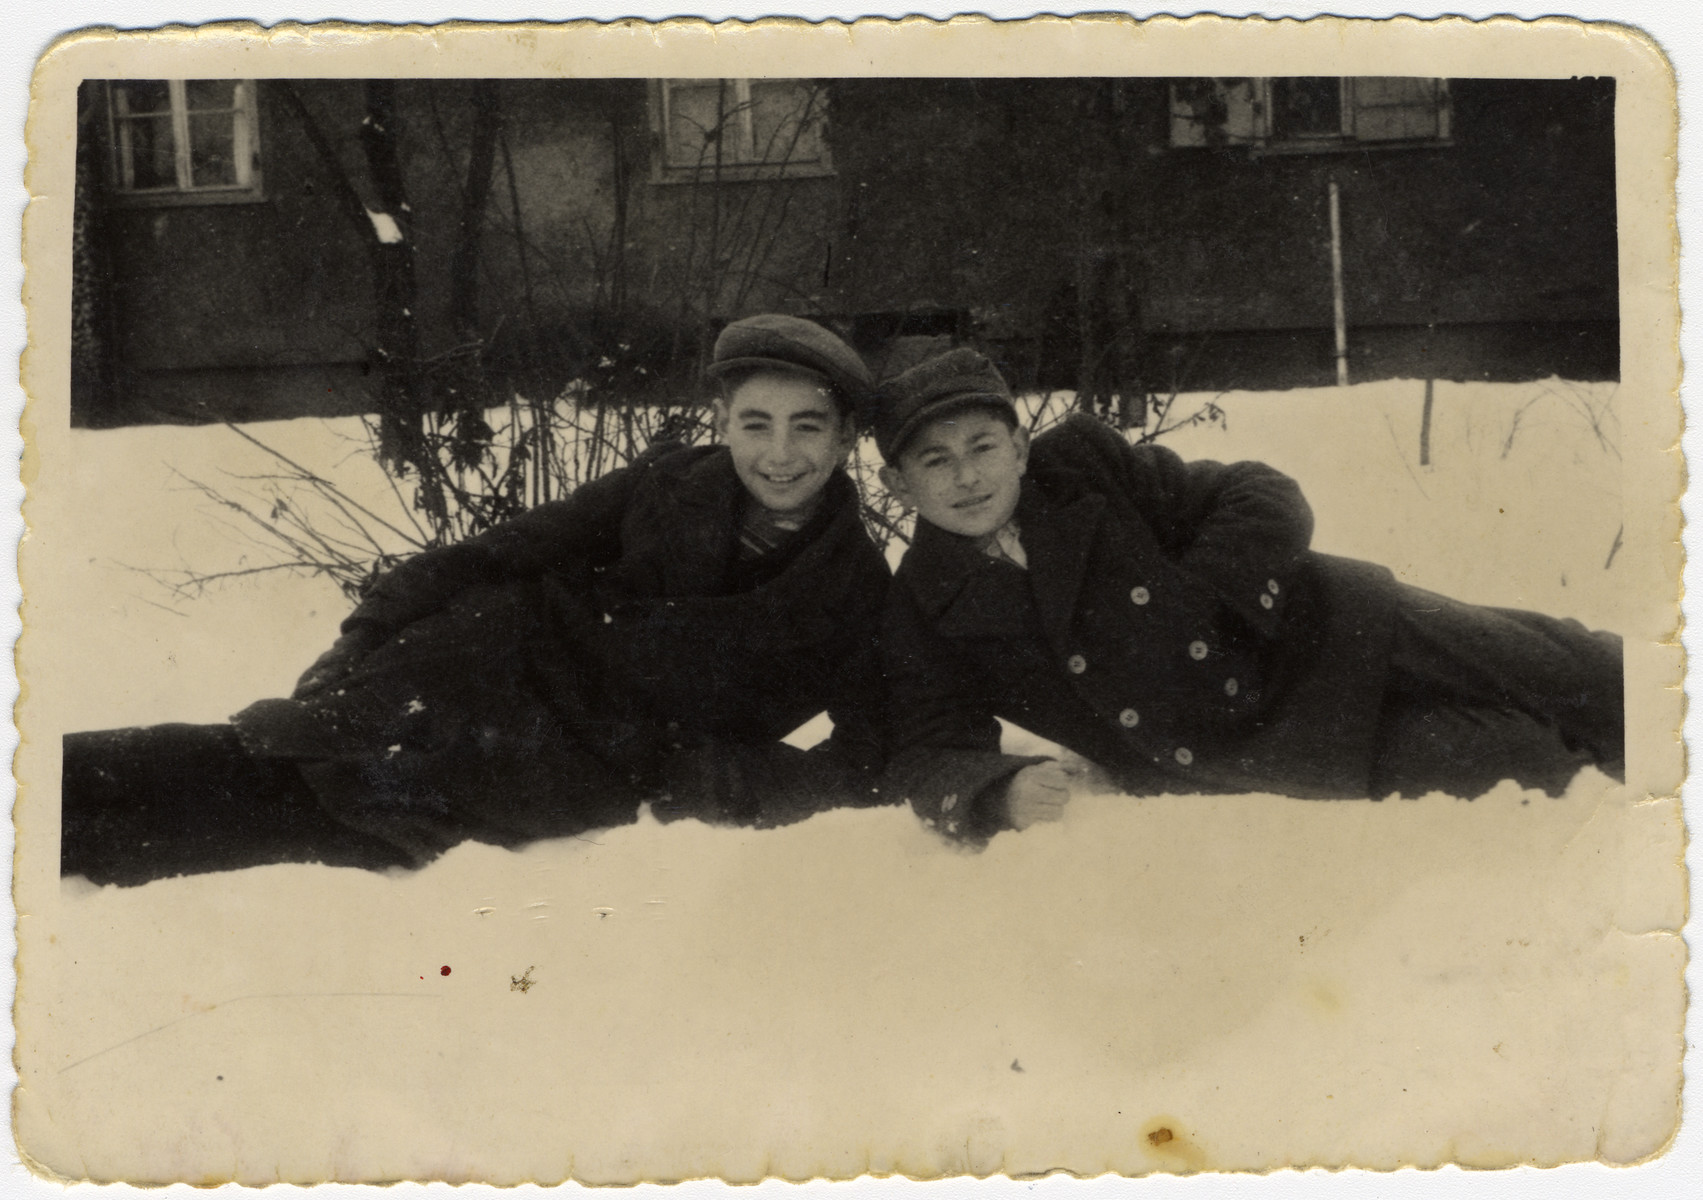 Two teenagers lie in the snow in the Pocking displaced persons' camp.  Zvi Hirsh Brill is on the right.